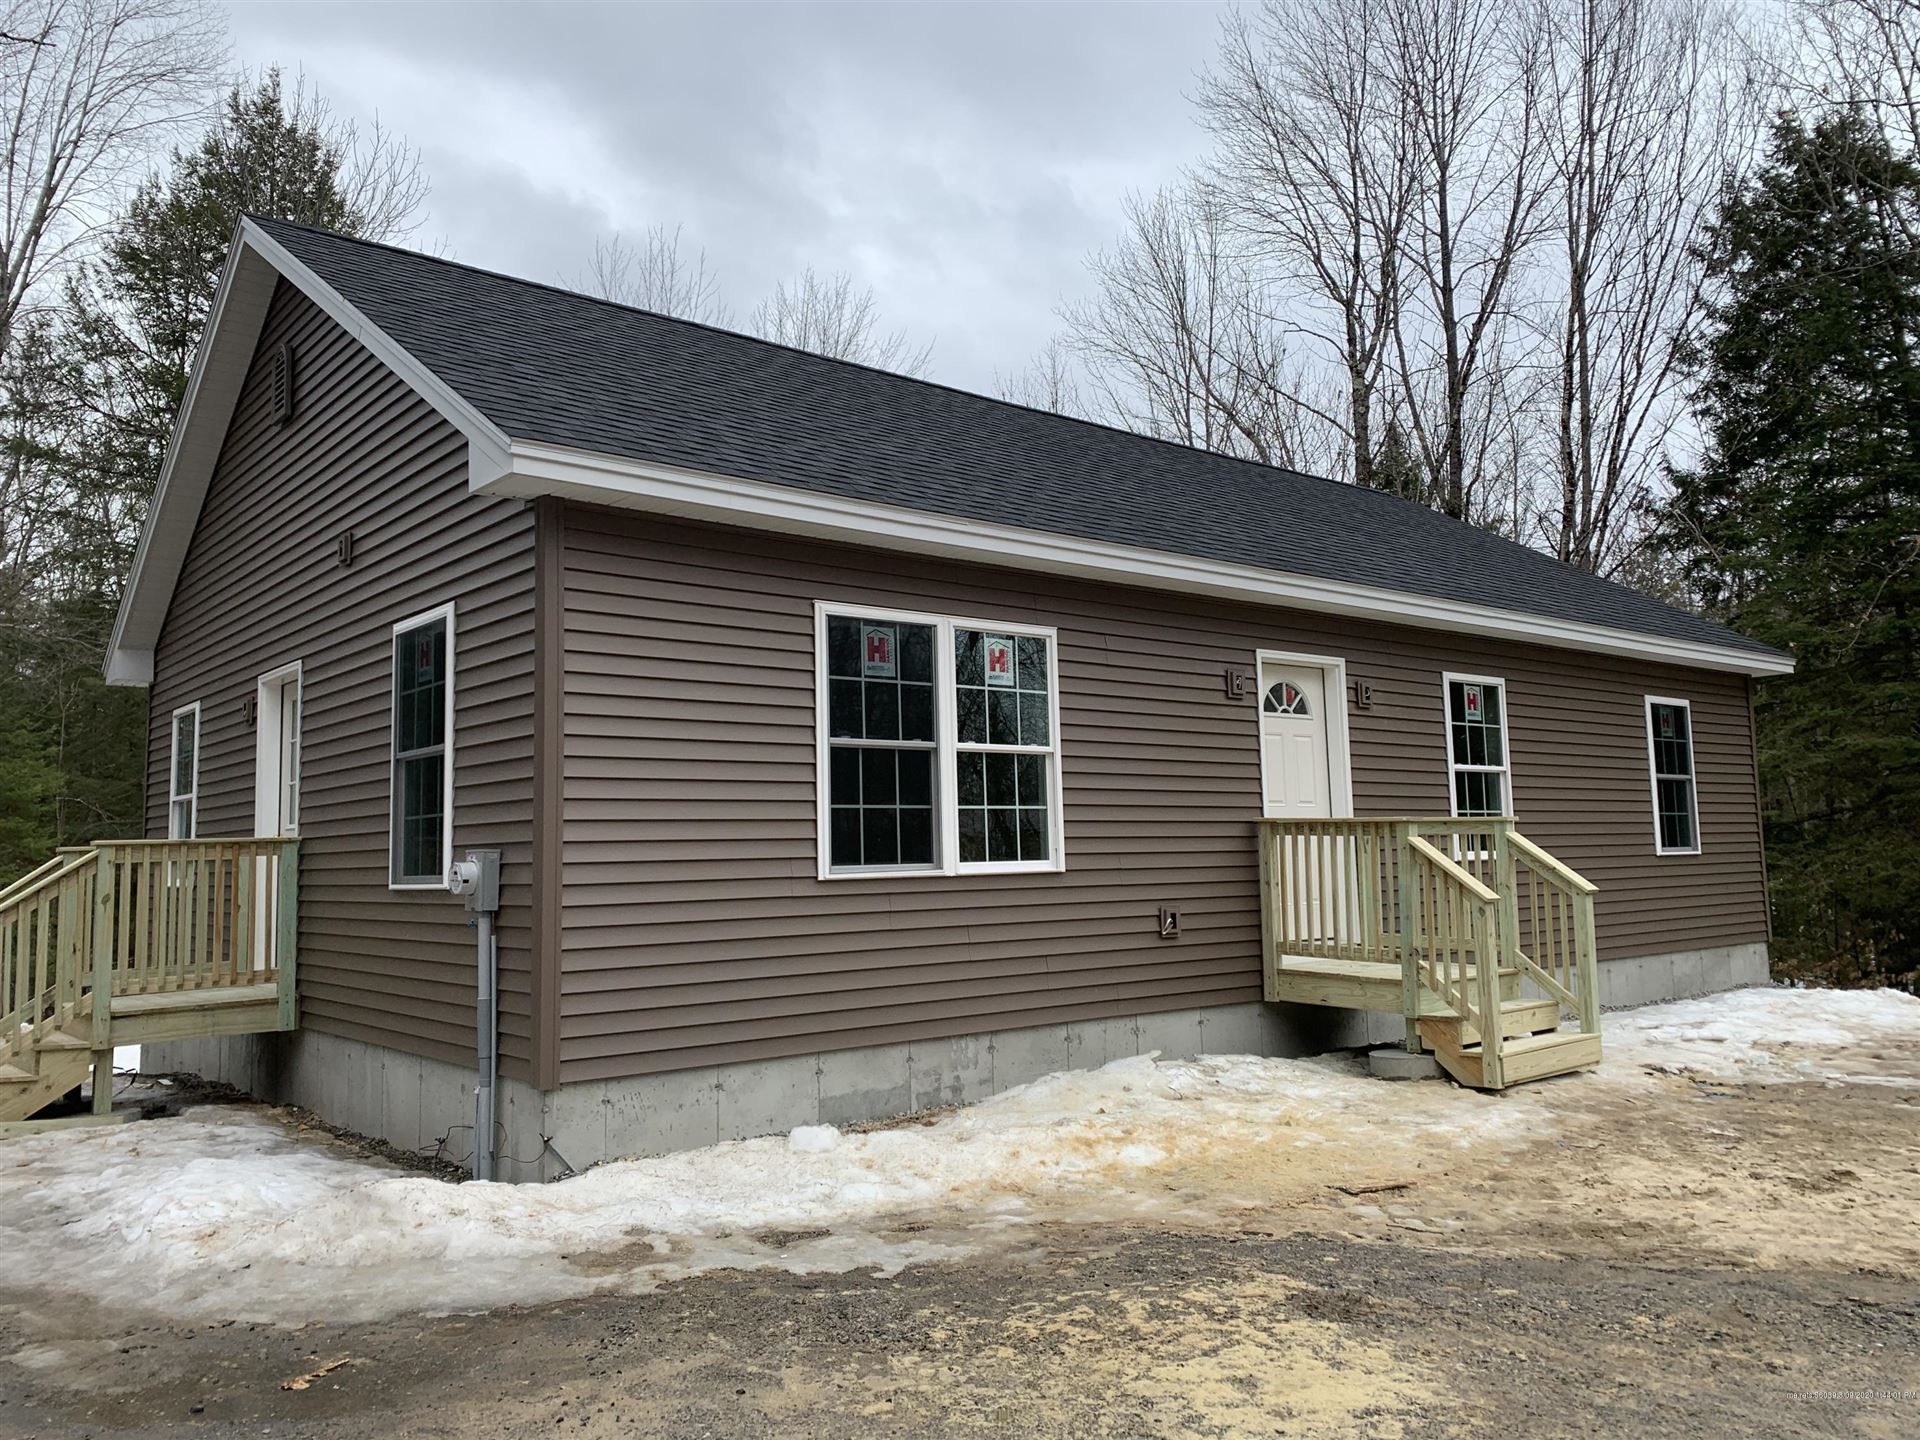 Photo of 29 Cold Springs Road, Casco, ME 04015 (MLS # 1444934)